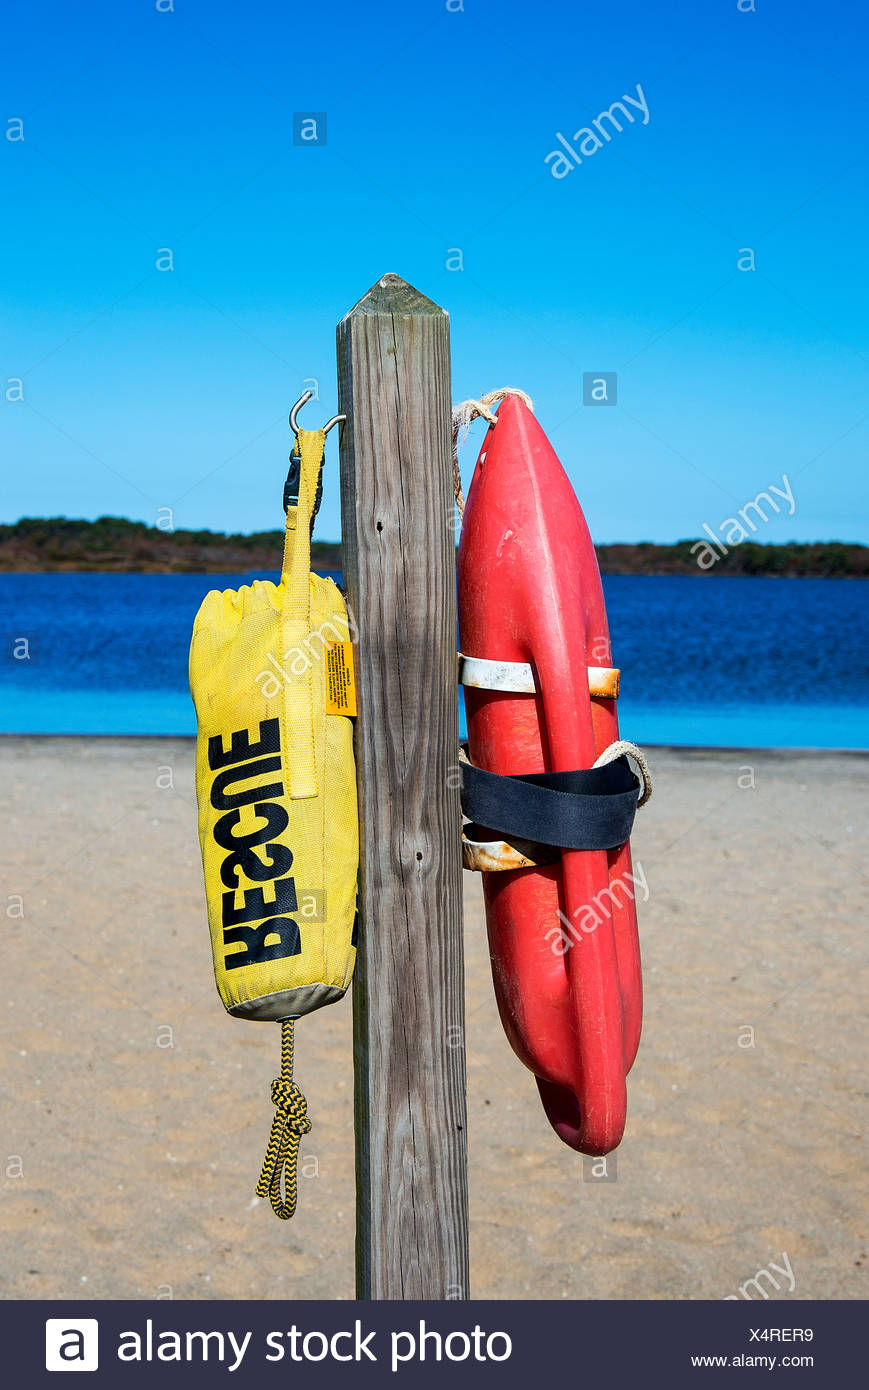 Rescue floats at a beach, Massachusetts, USA - Stock Image